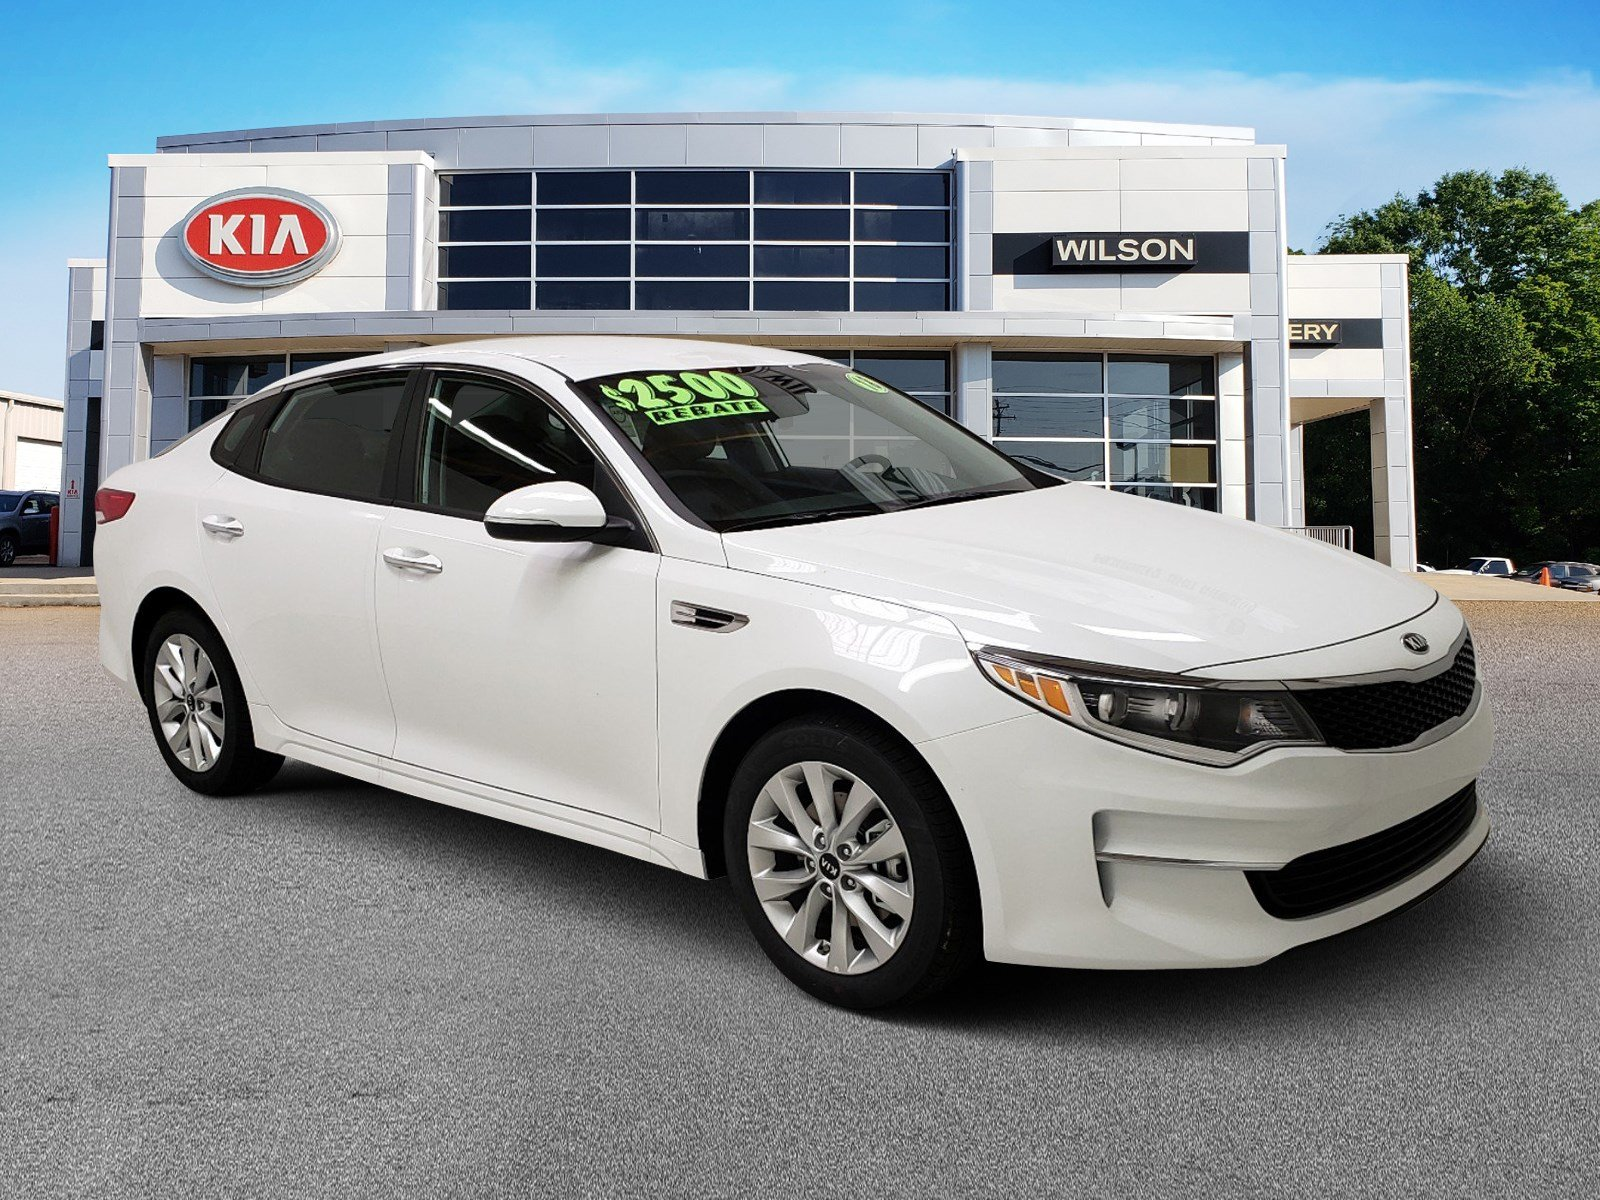 Kia Optima: Using a child restraint system